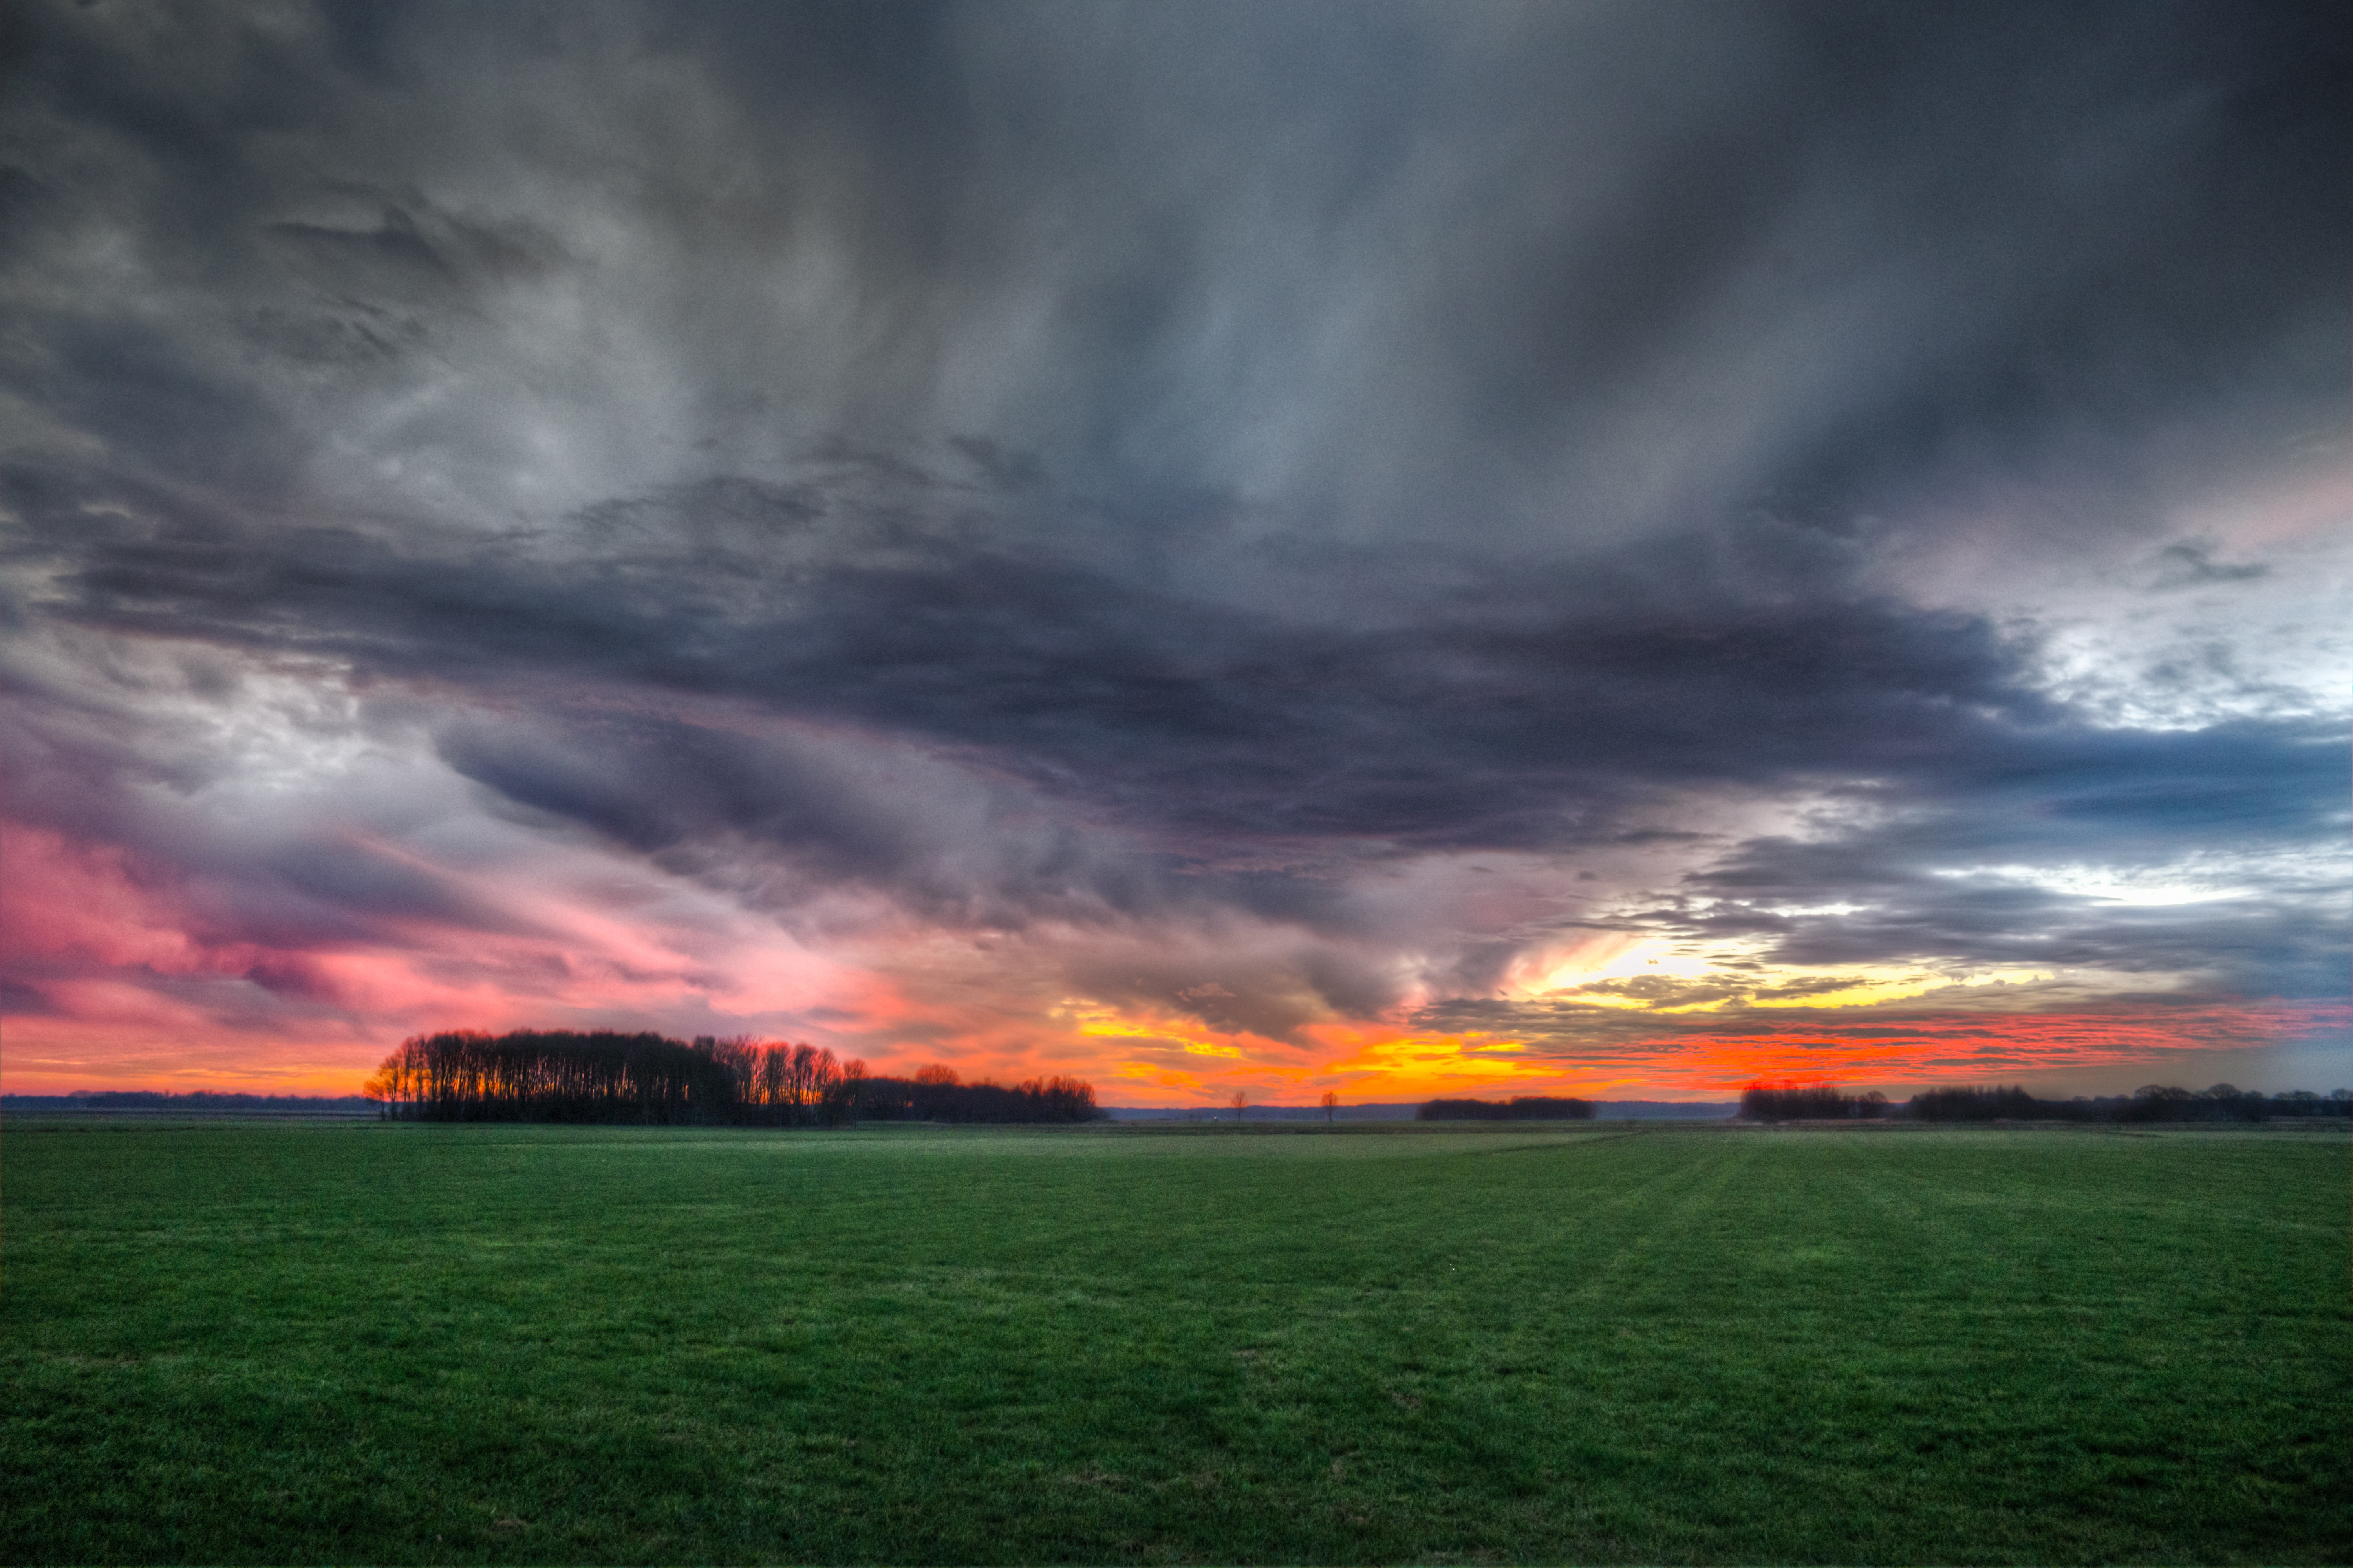 Storm clouds over field during sunset photo